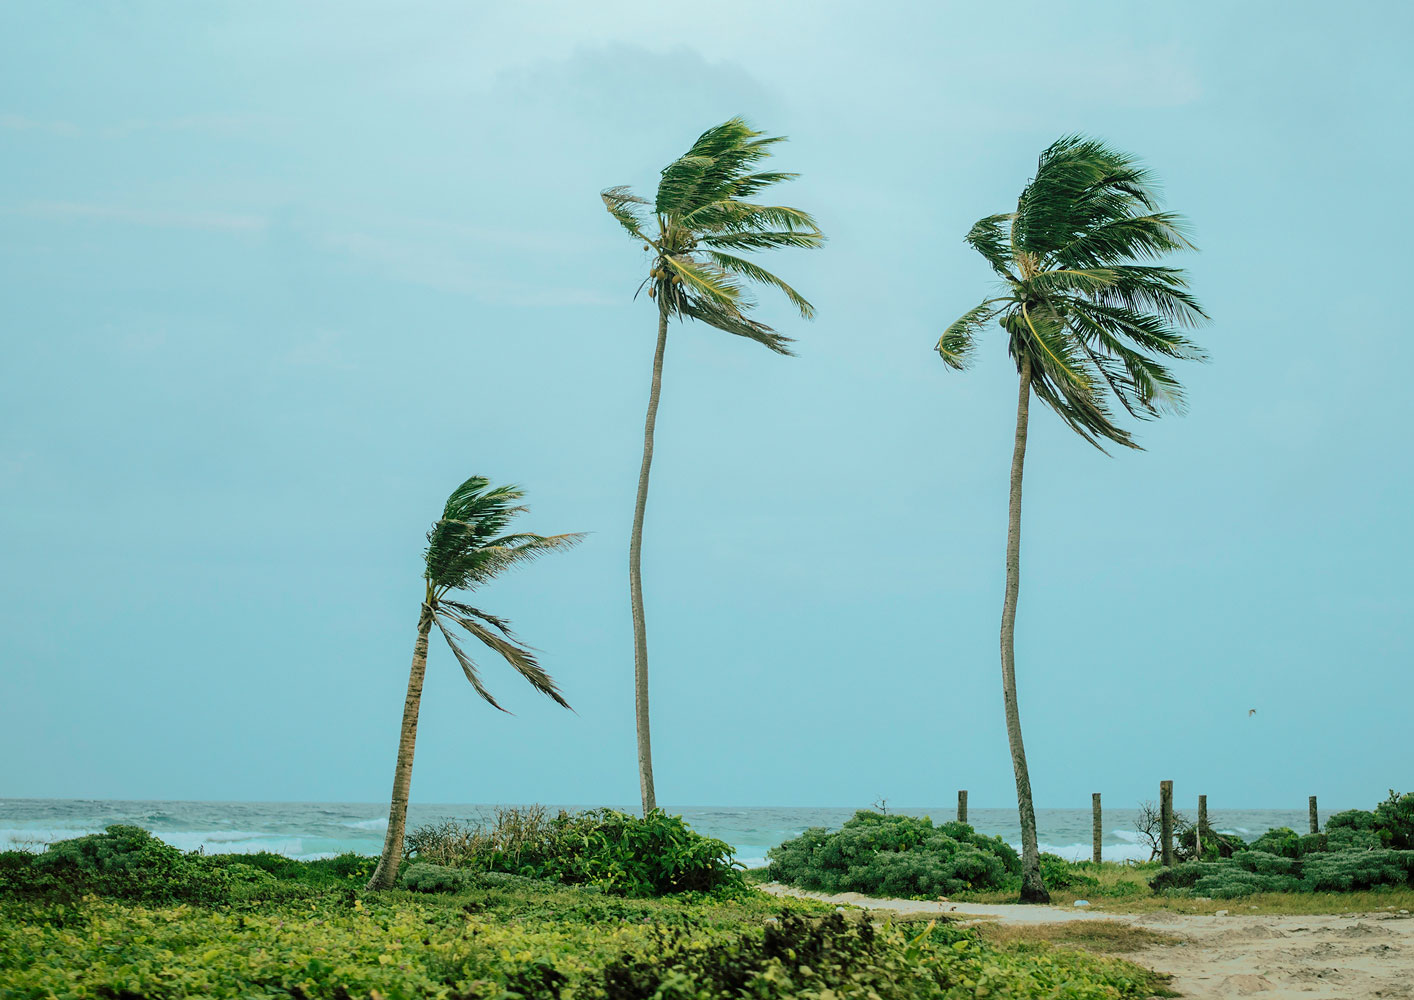 Landscape photography with the title 'Whispering of the Sea'. Palm trees by the ocean, bending in the wind - photogrpahed by jessica daza gomez - friendmade.fm